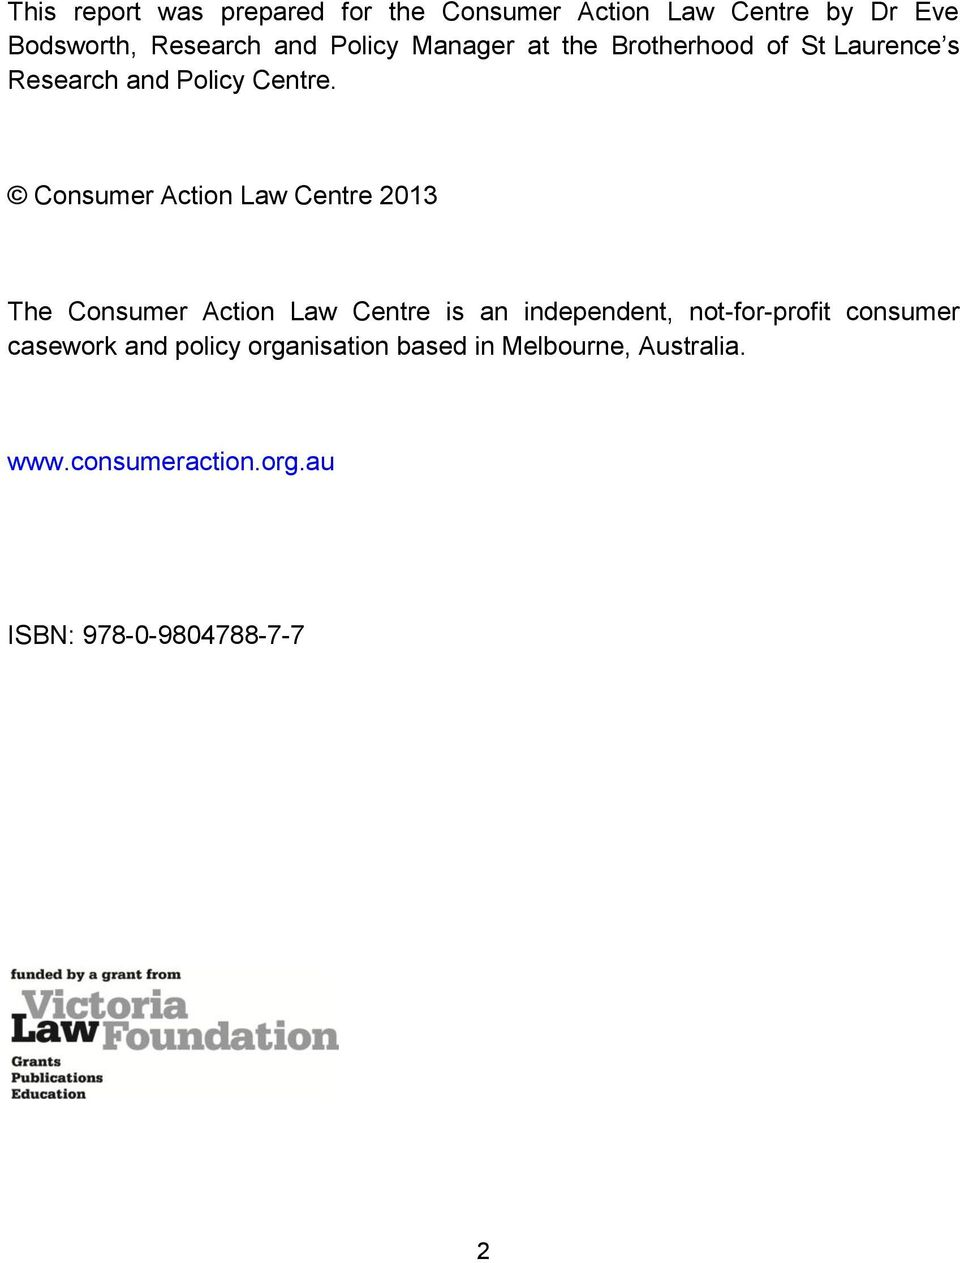 Consumer Action Law Centre 2013 The Consumer Action Law Centre is an independent, not-for-profit